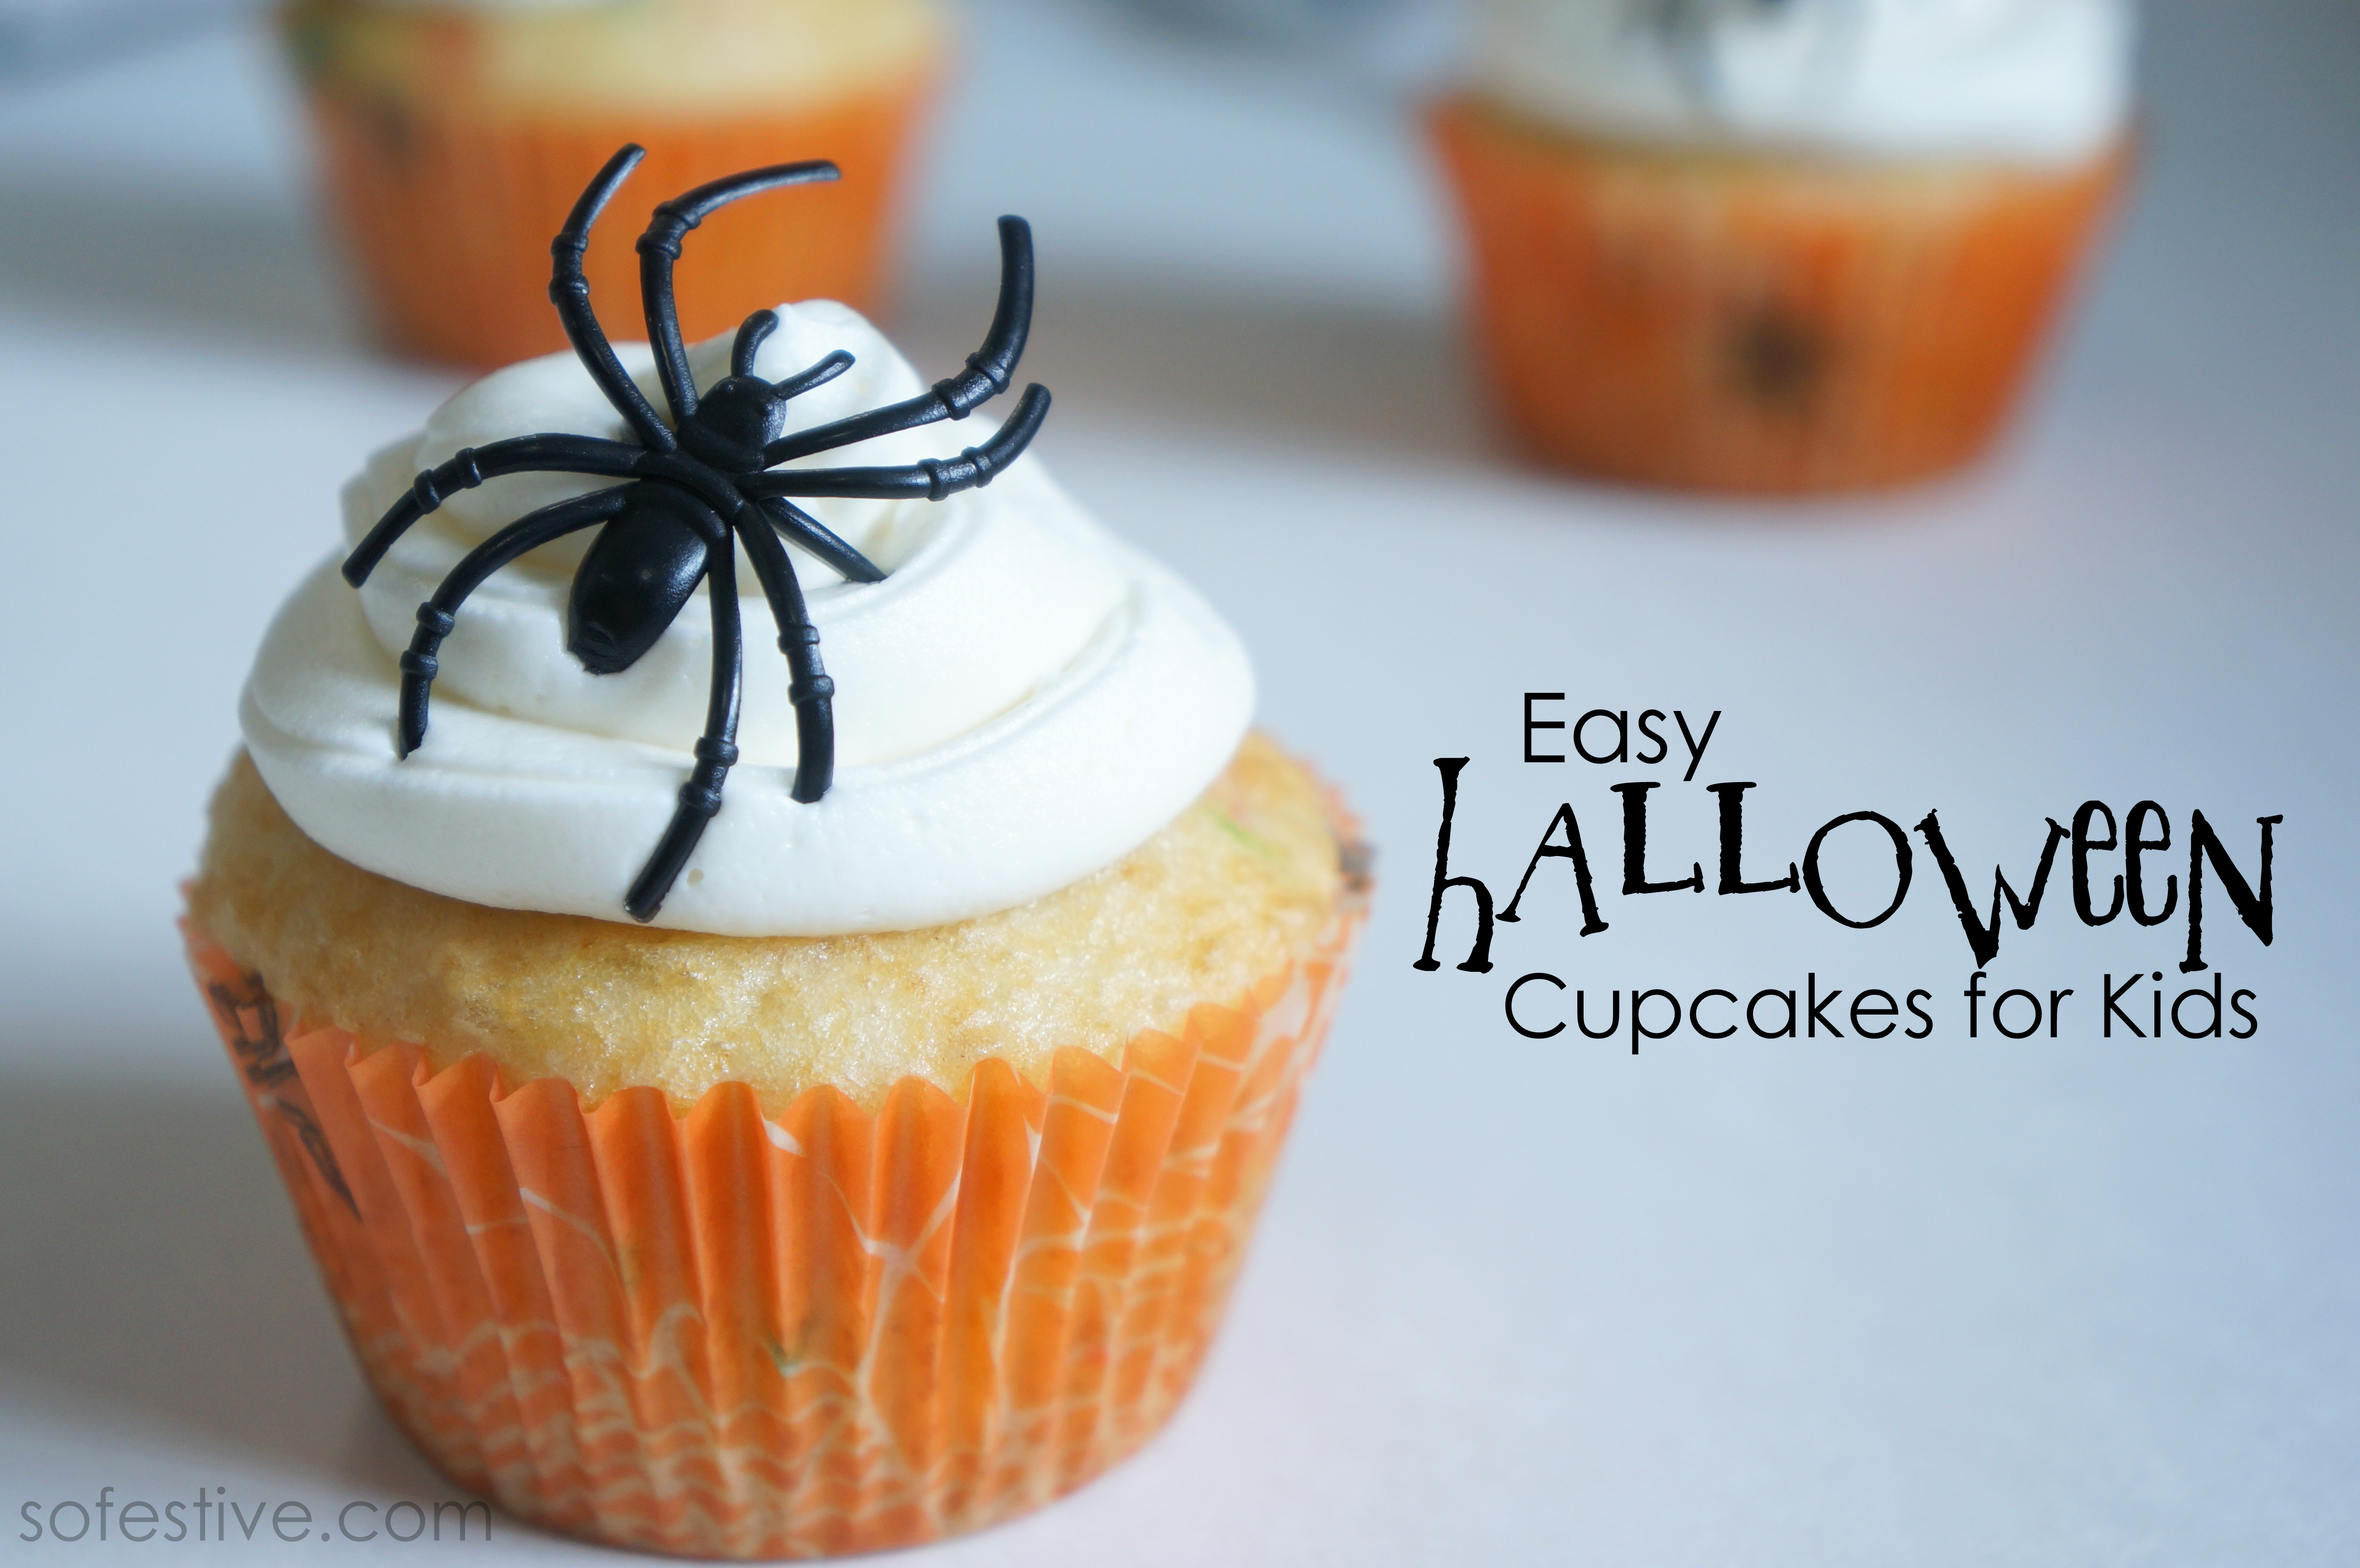 Easy Halloween Cupcakes for Kids